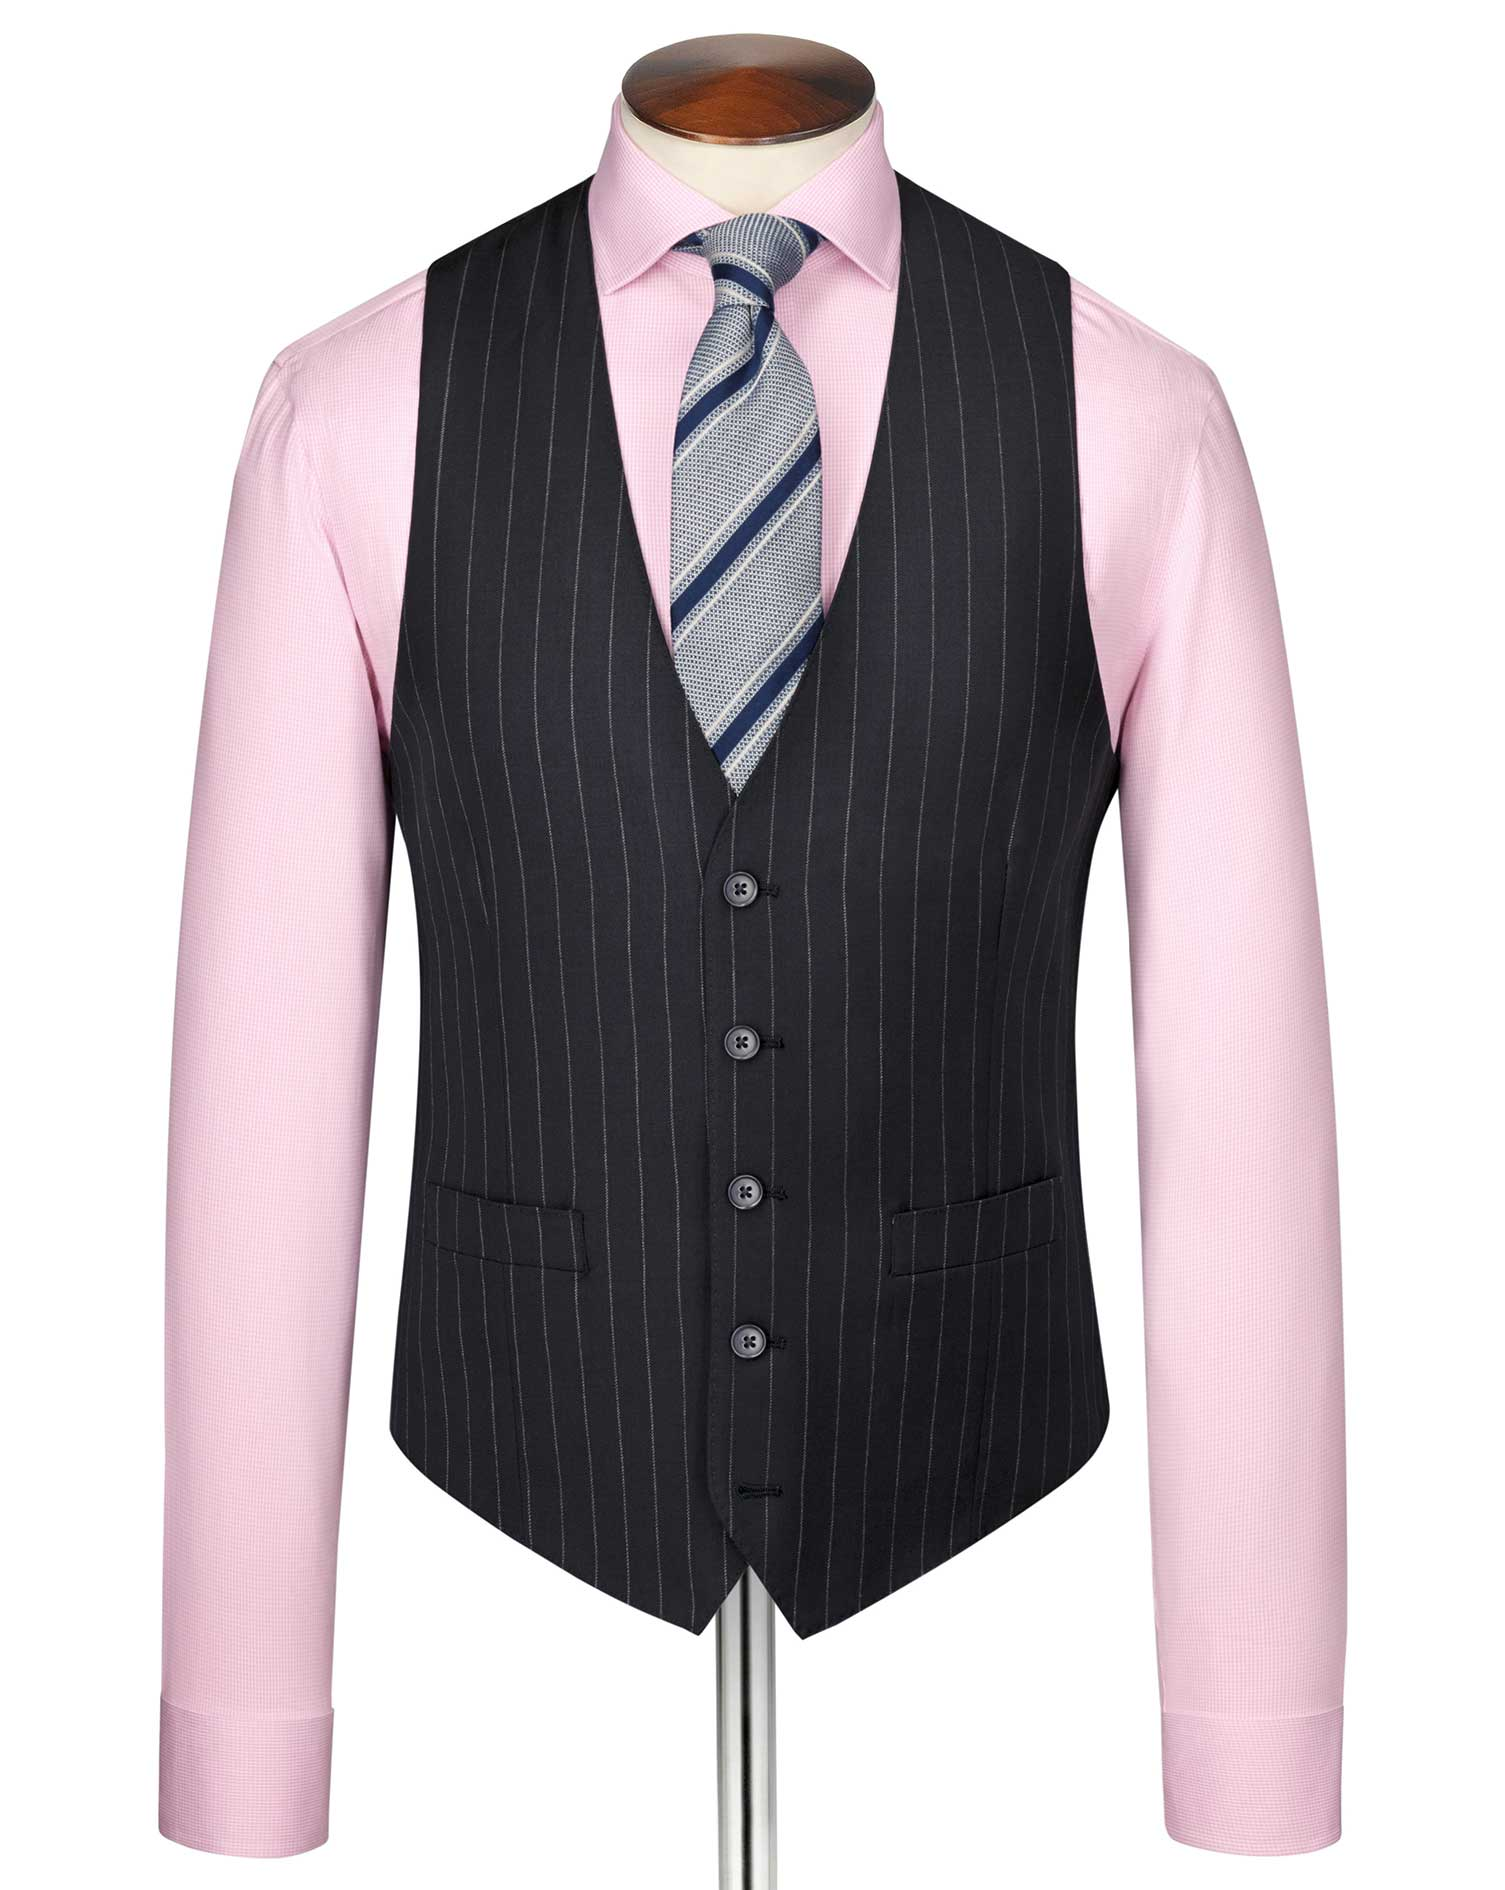 Navy Stripe Adjustable Fit Twill Business Suit Wool Waistcoat Size w38 by Charles Tyrwhitt